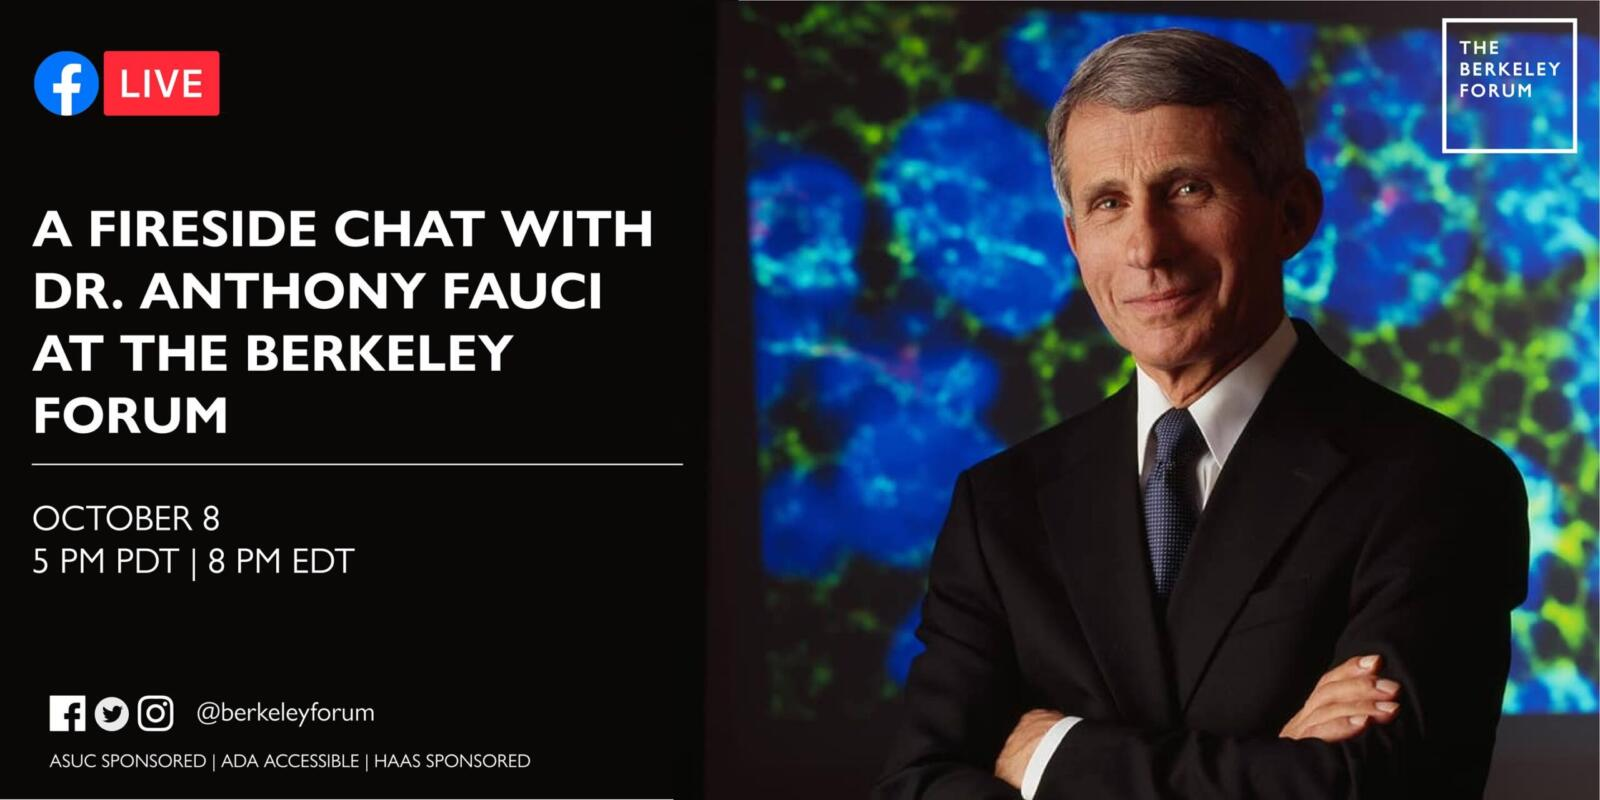 LIVE: Fireside Chat with Dr. Anthony Fauci at the Berkeley Forum